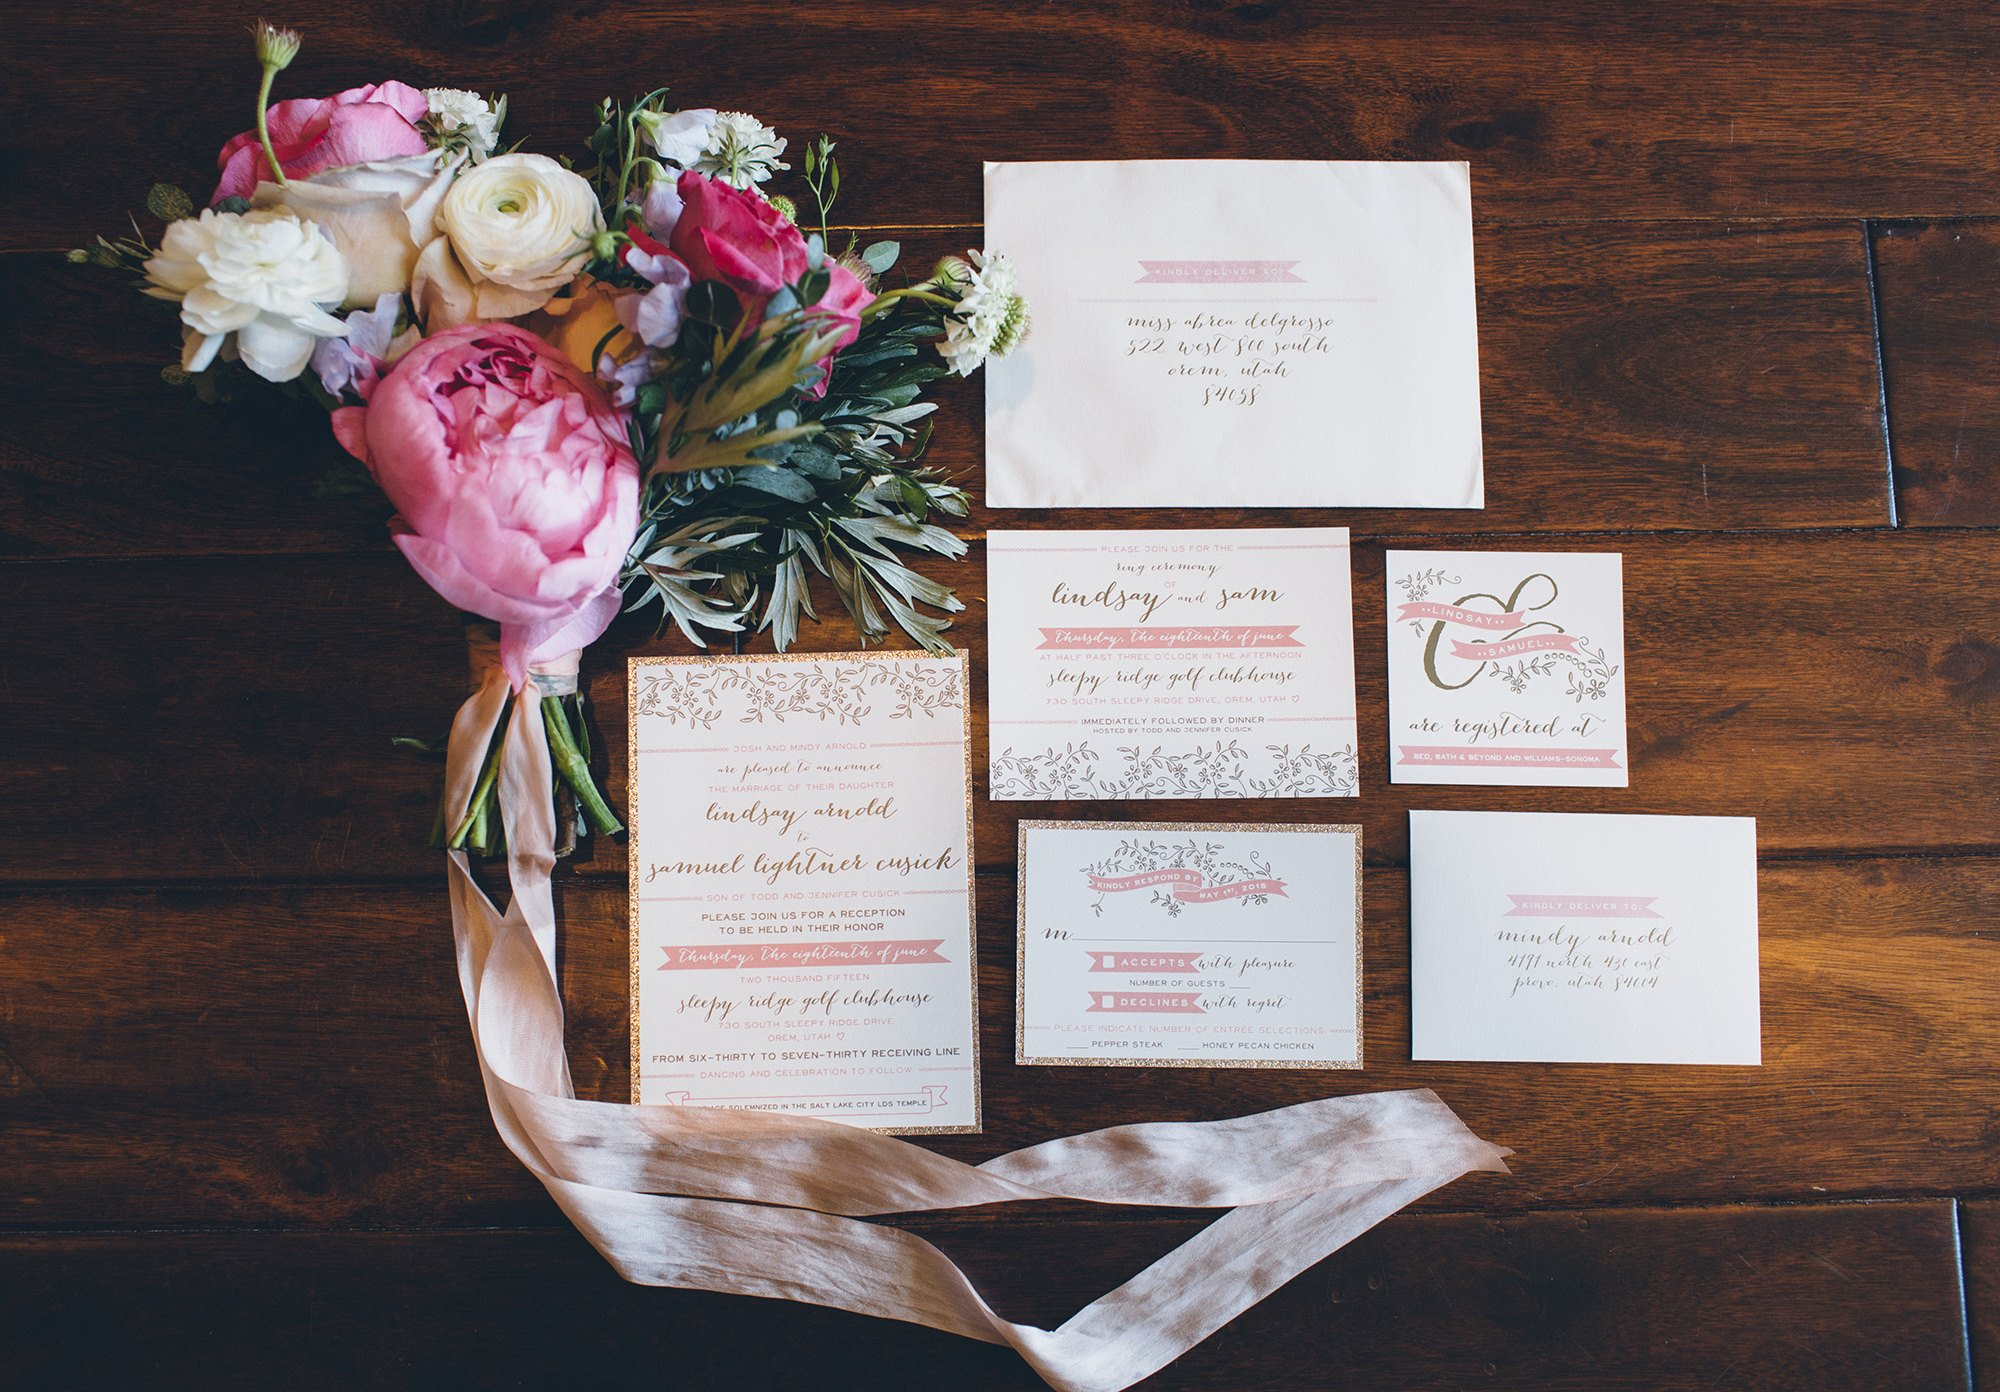 pink and white wedding invitations and floral bouquet